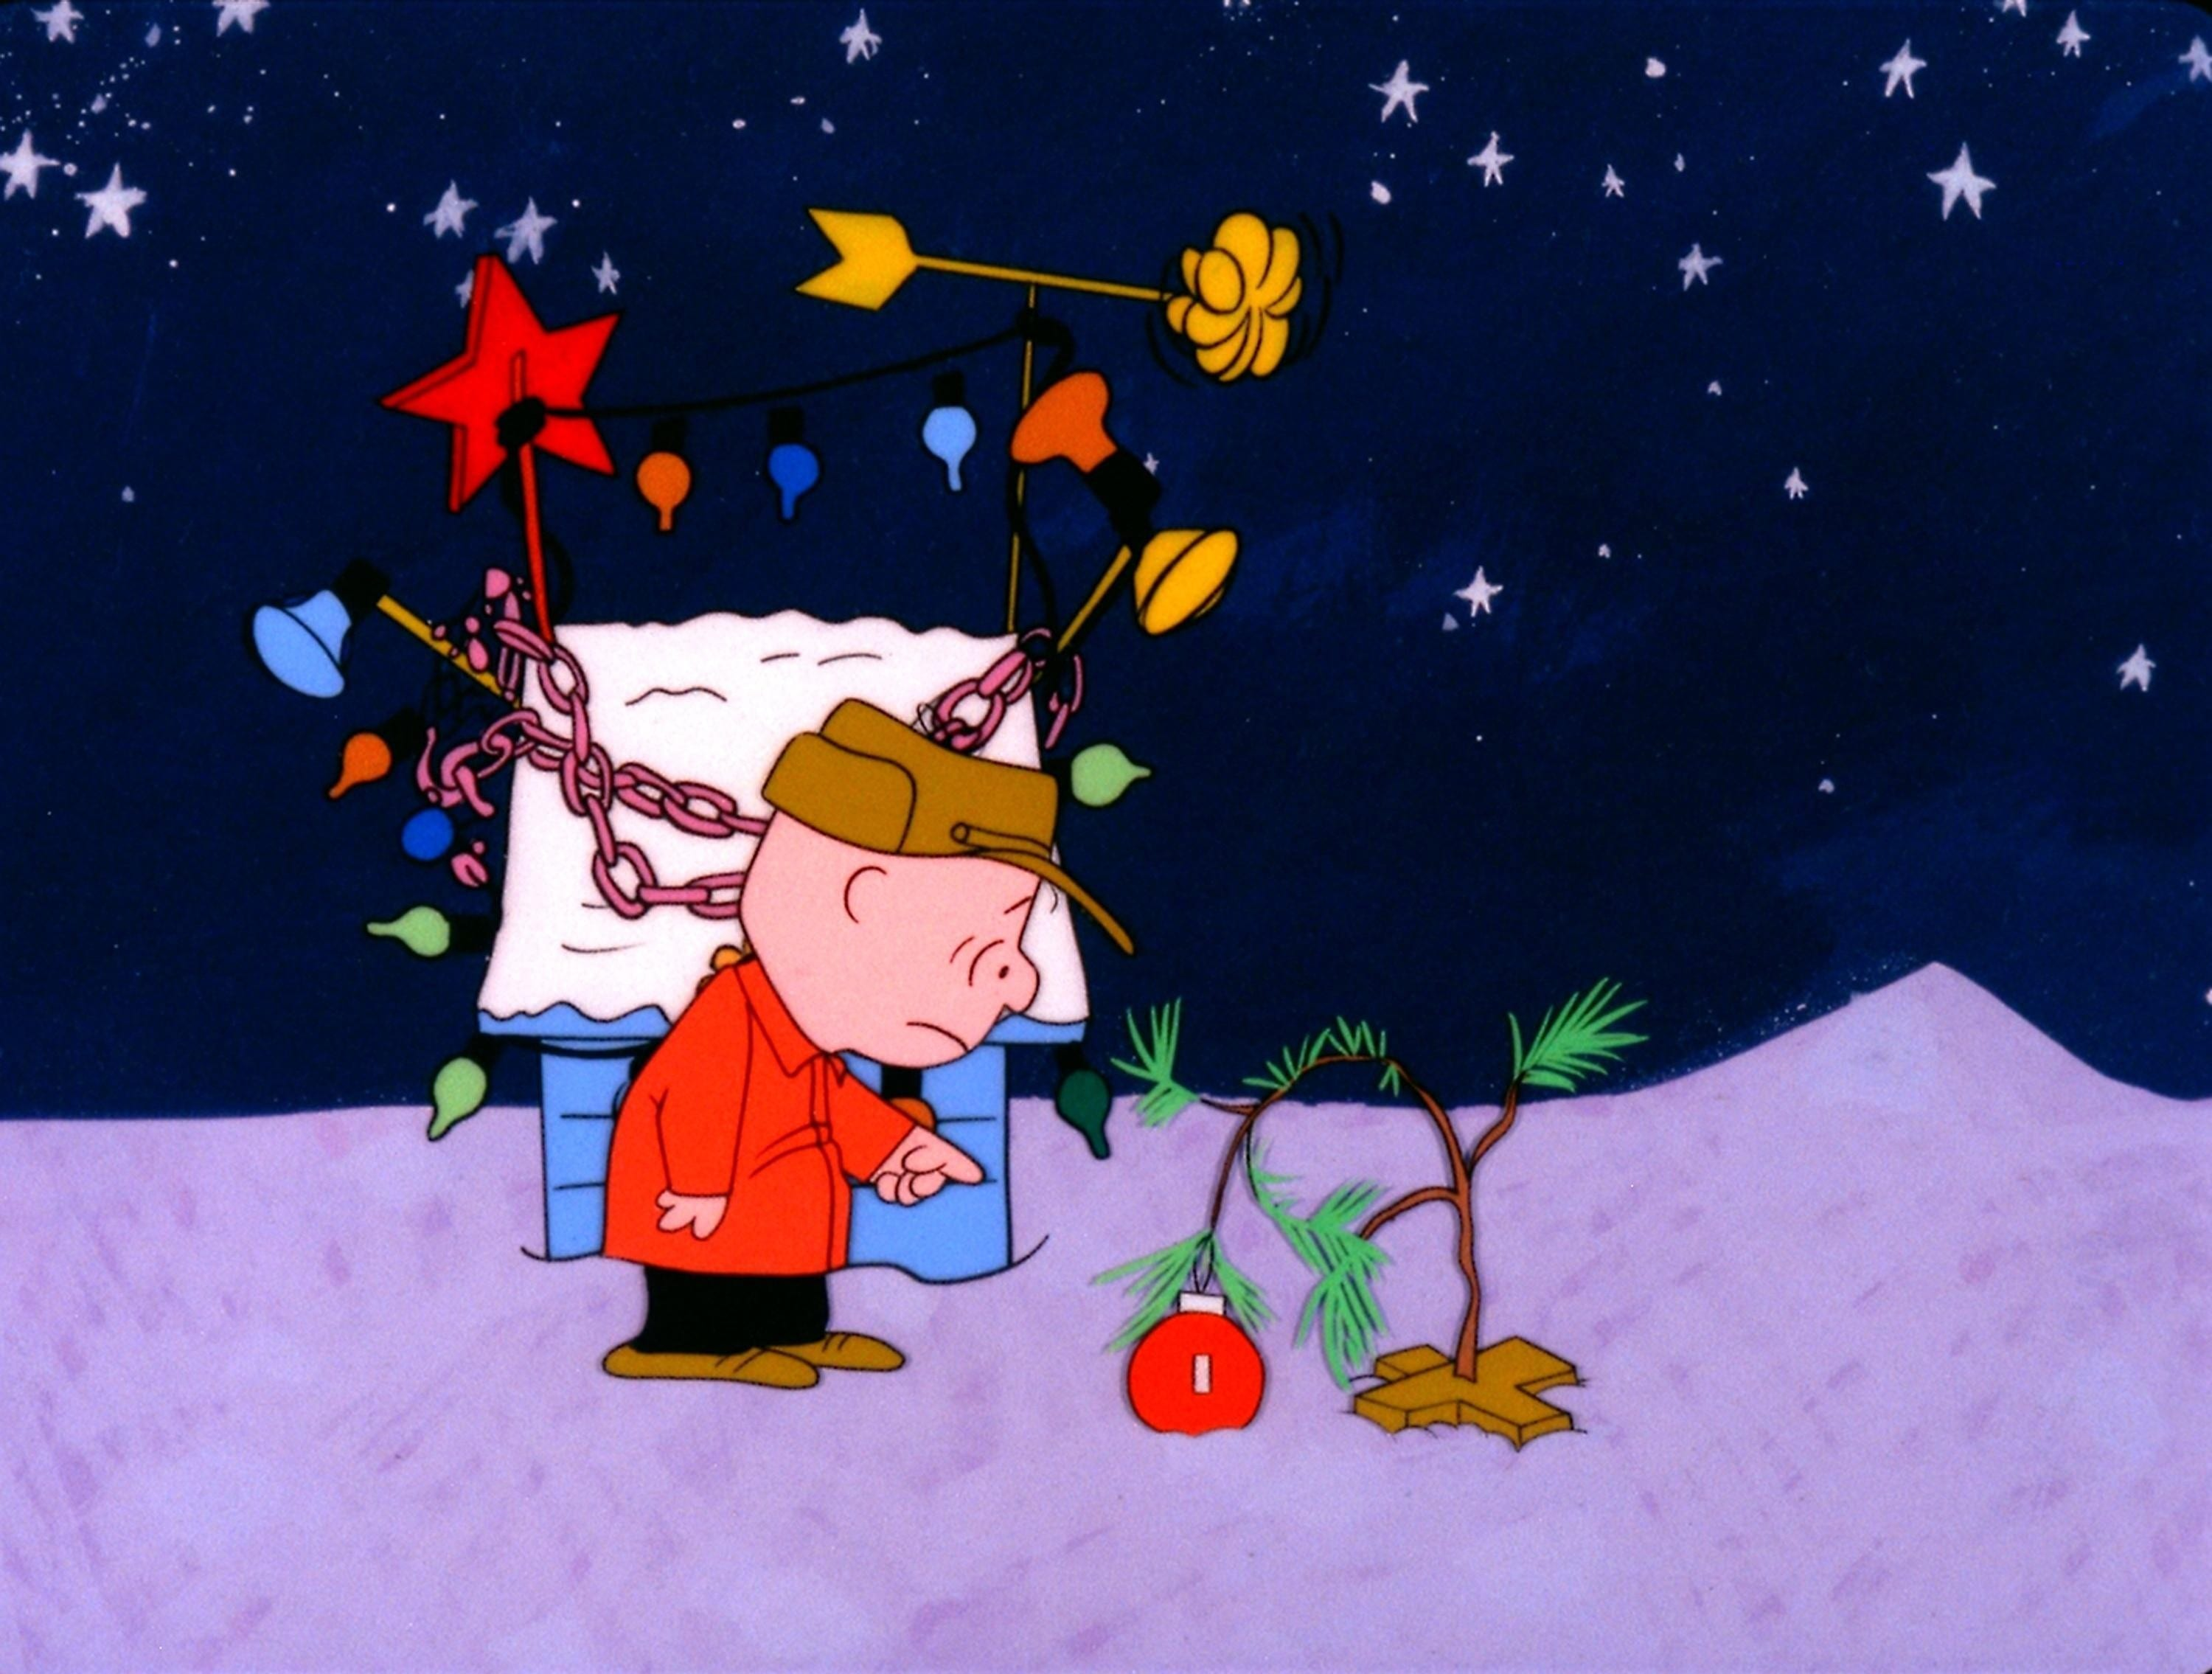 Screenshot: Charlie Brown Christmas Tree